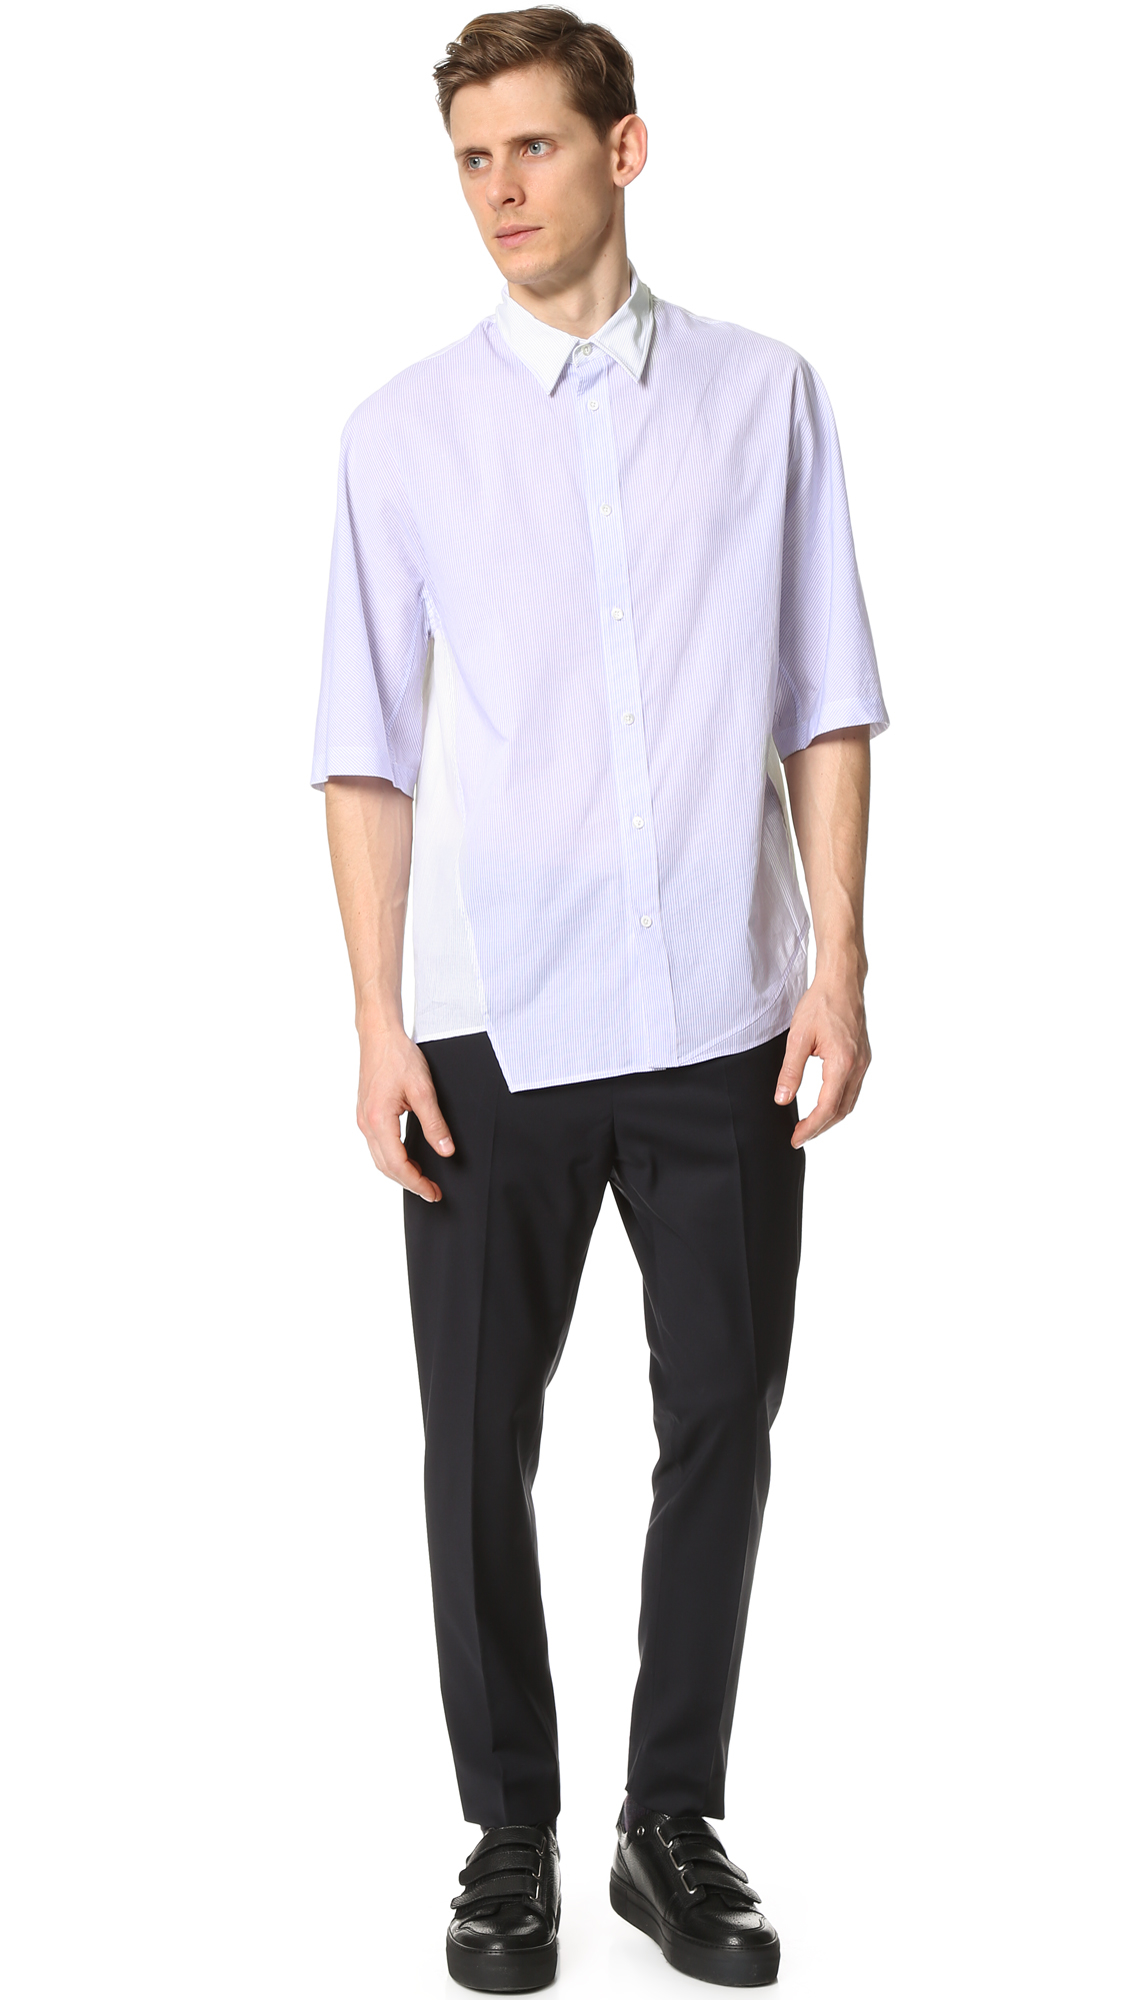 3 1 Phillip Lim Asymmetrical Short Sleeve Shirt With